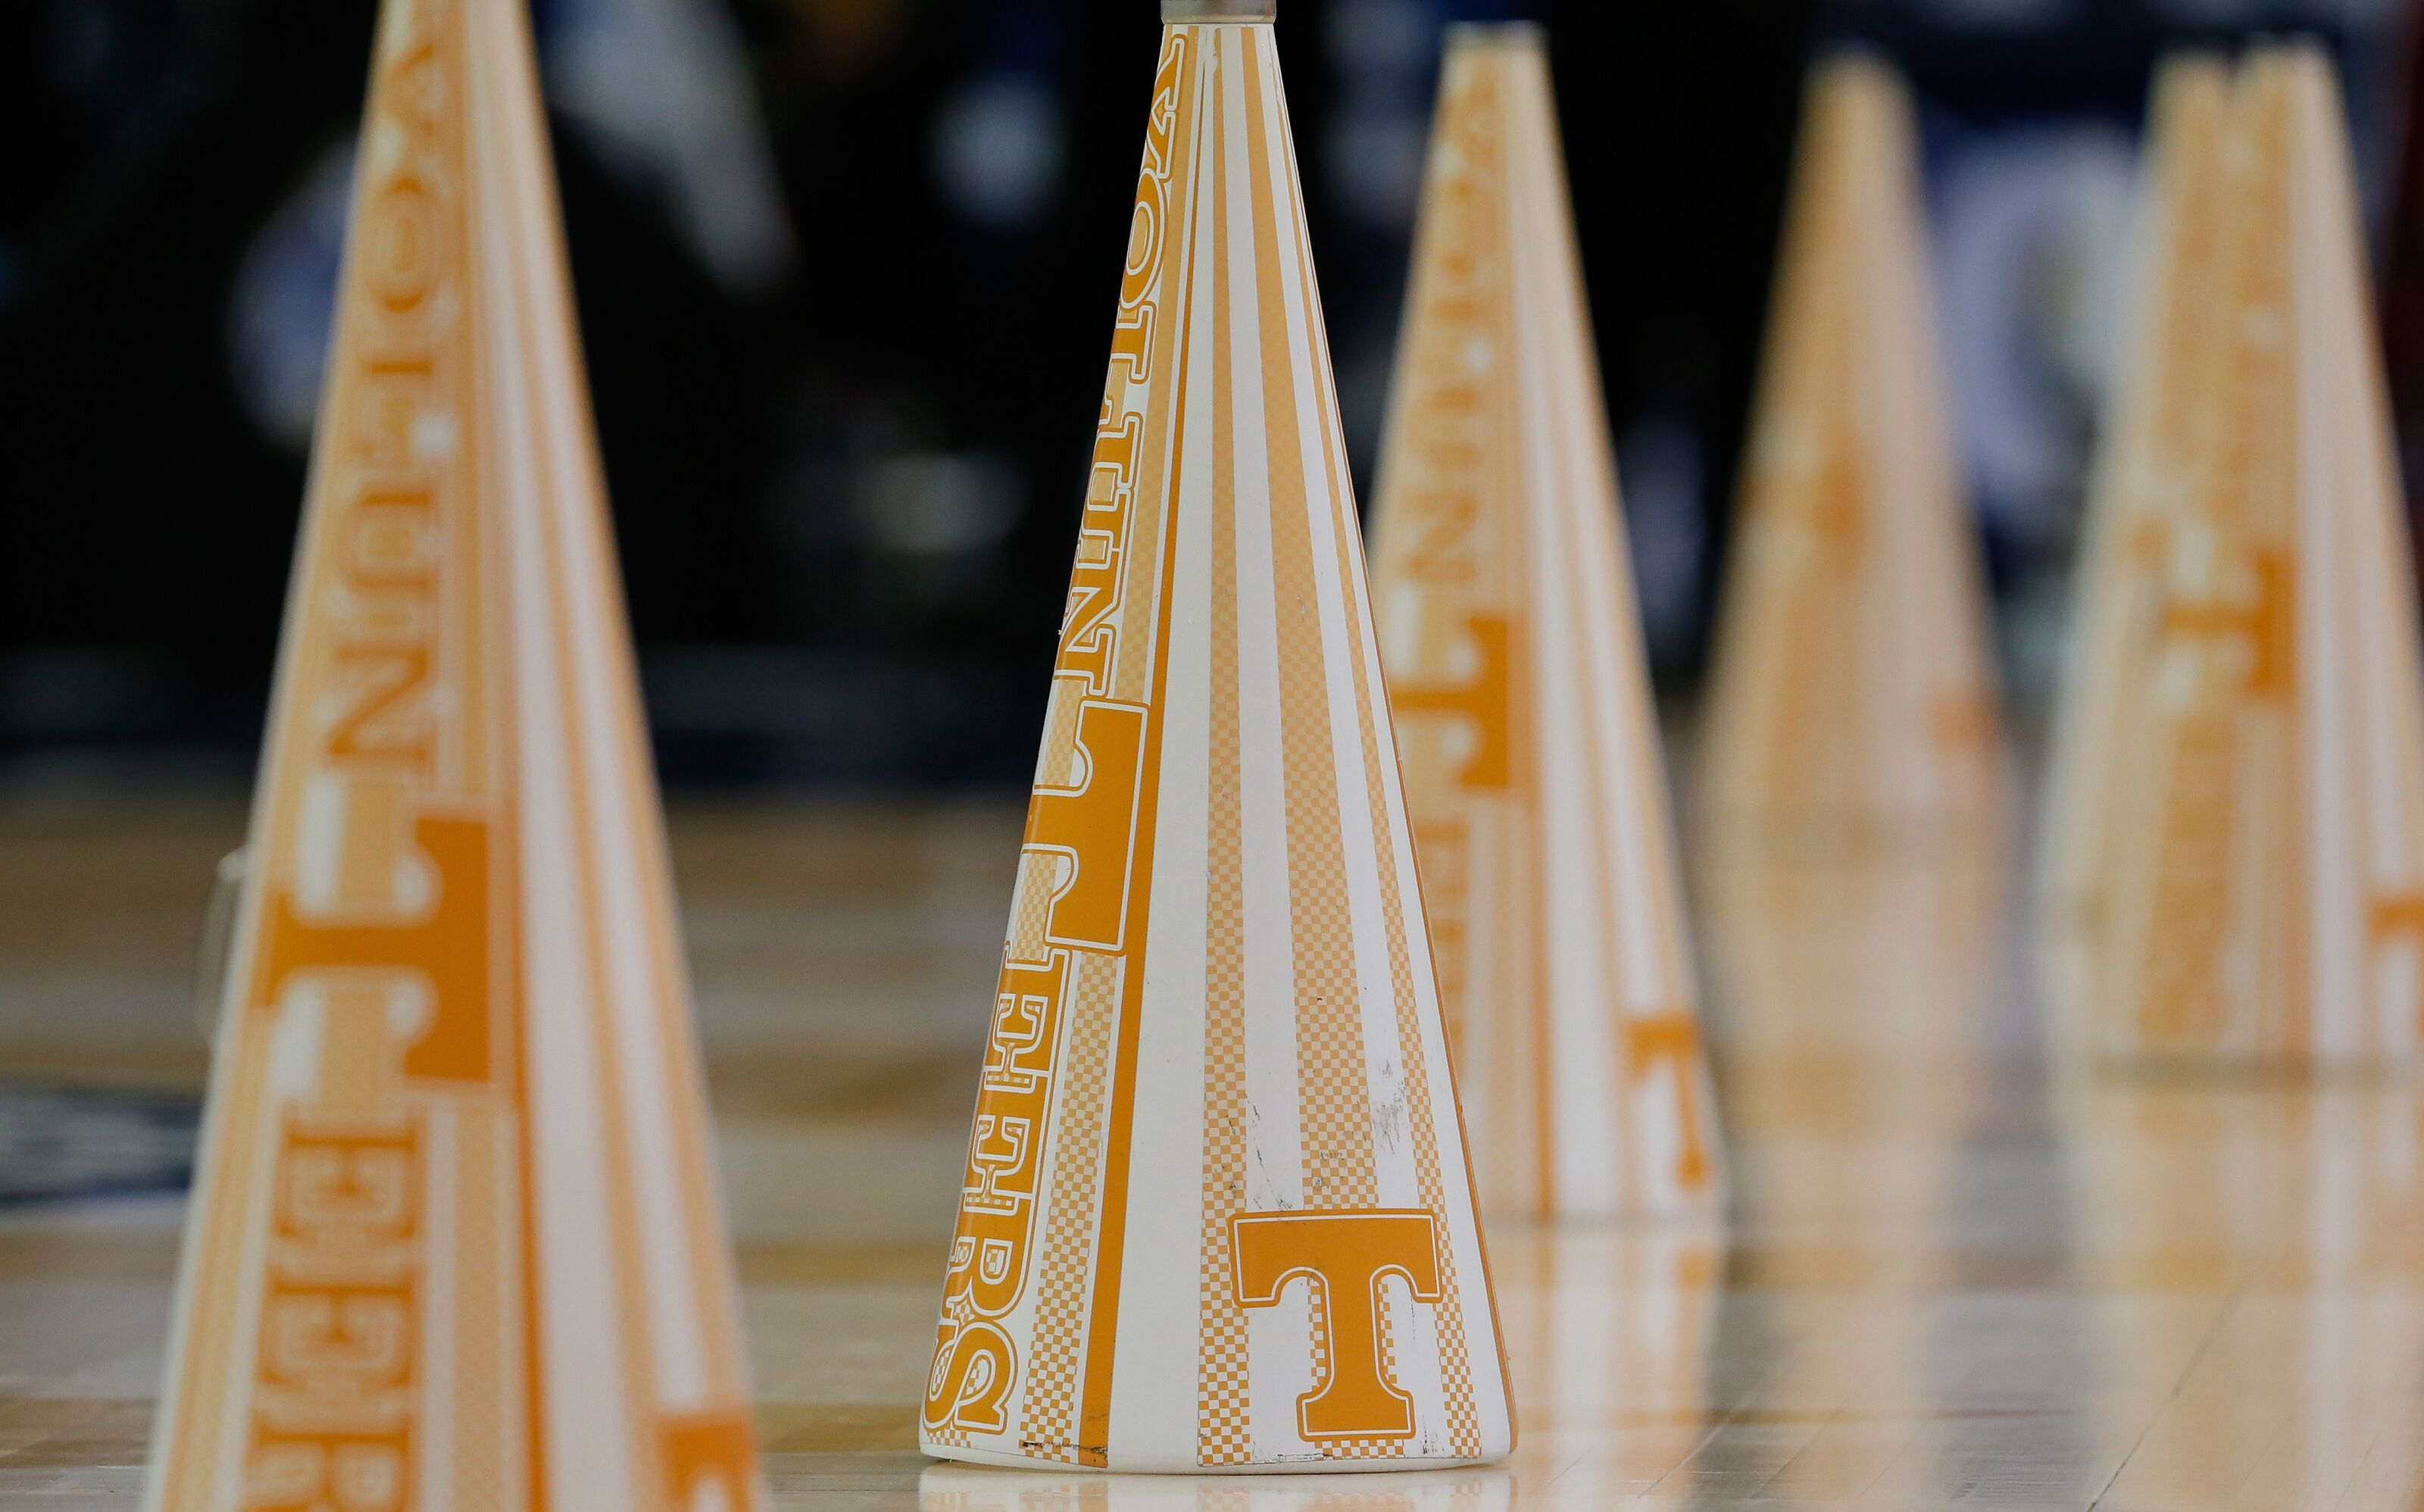 Three takeaways from Tennessee Lady Vols 73-71 loss to Texas A&M Aggies